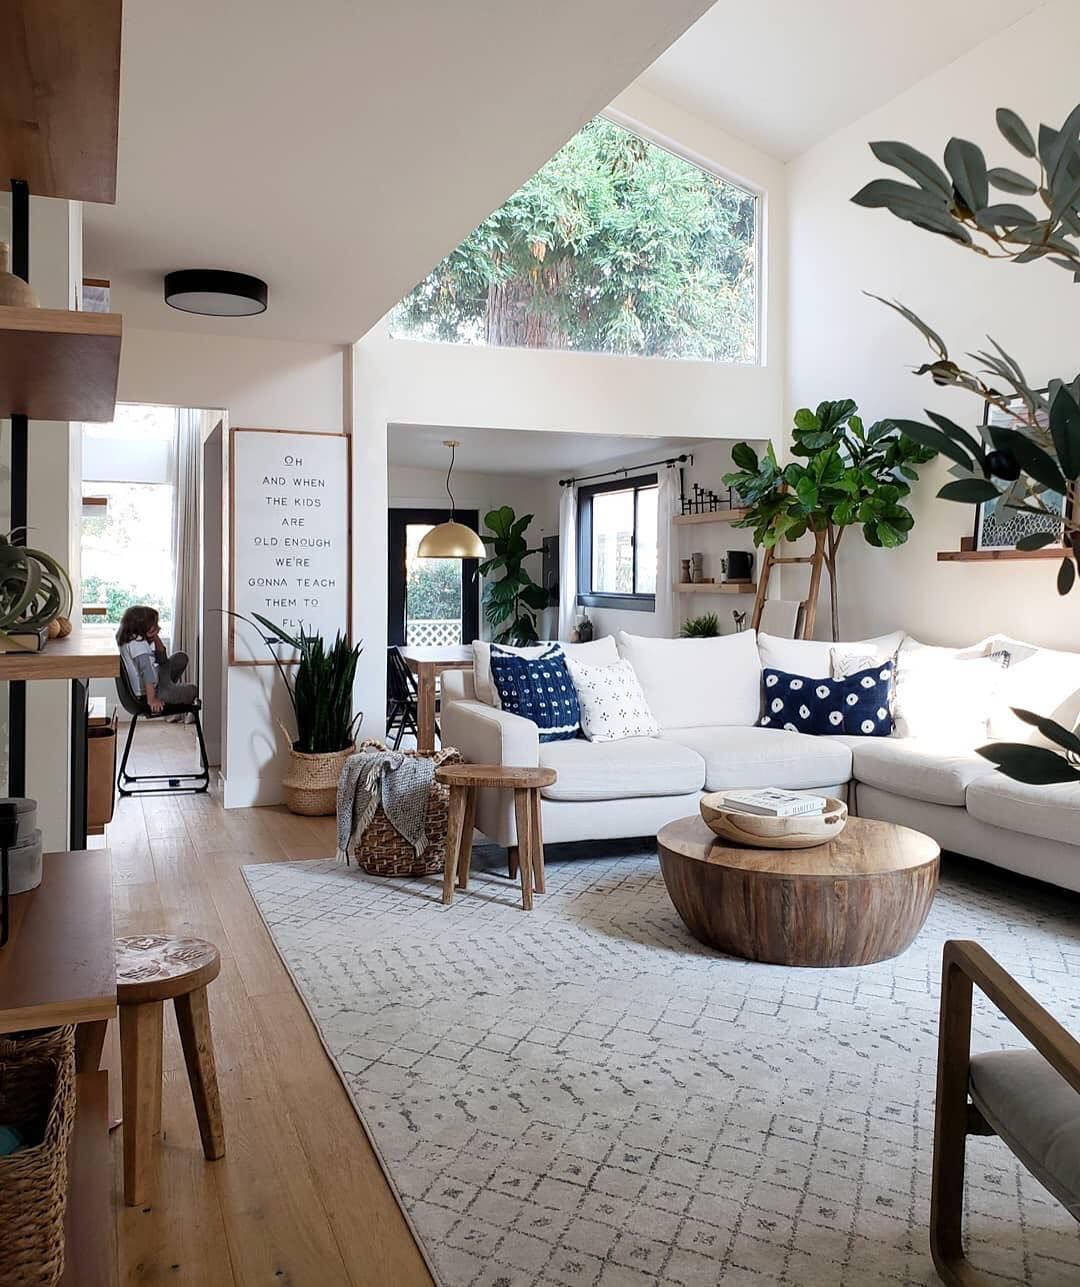 Pin On Living Room Diy Home ideas for living room